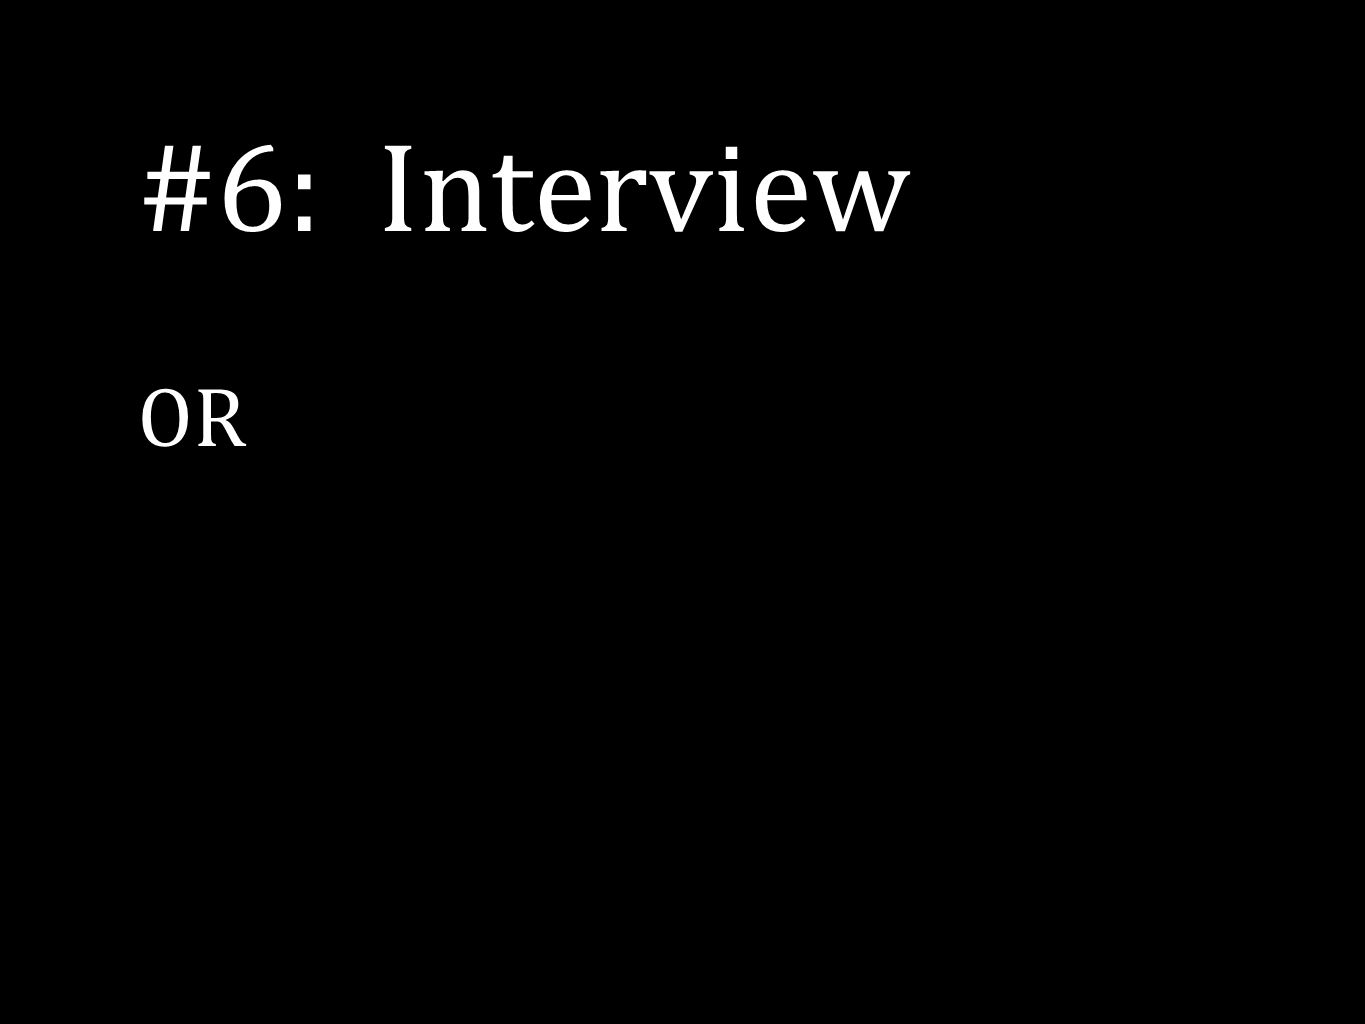 #6: Interview OR